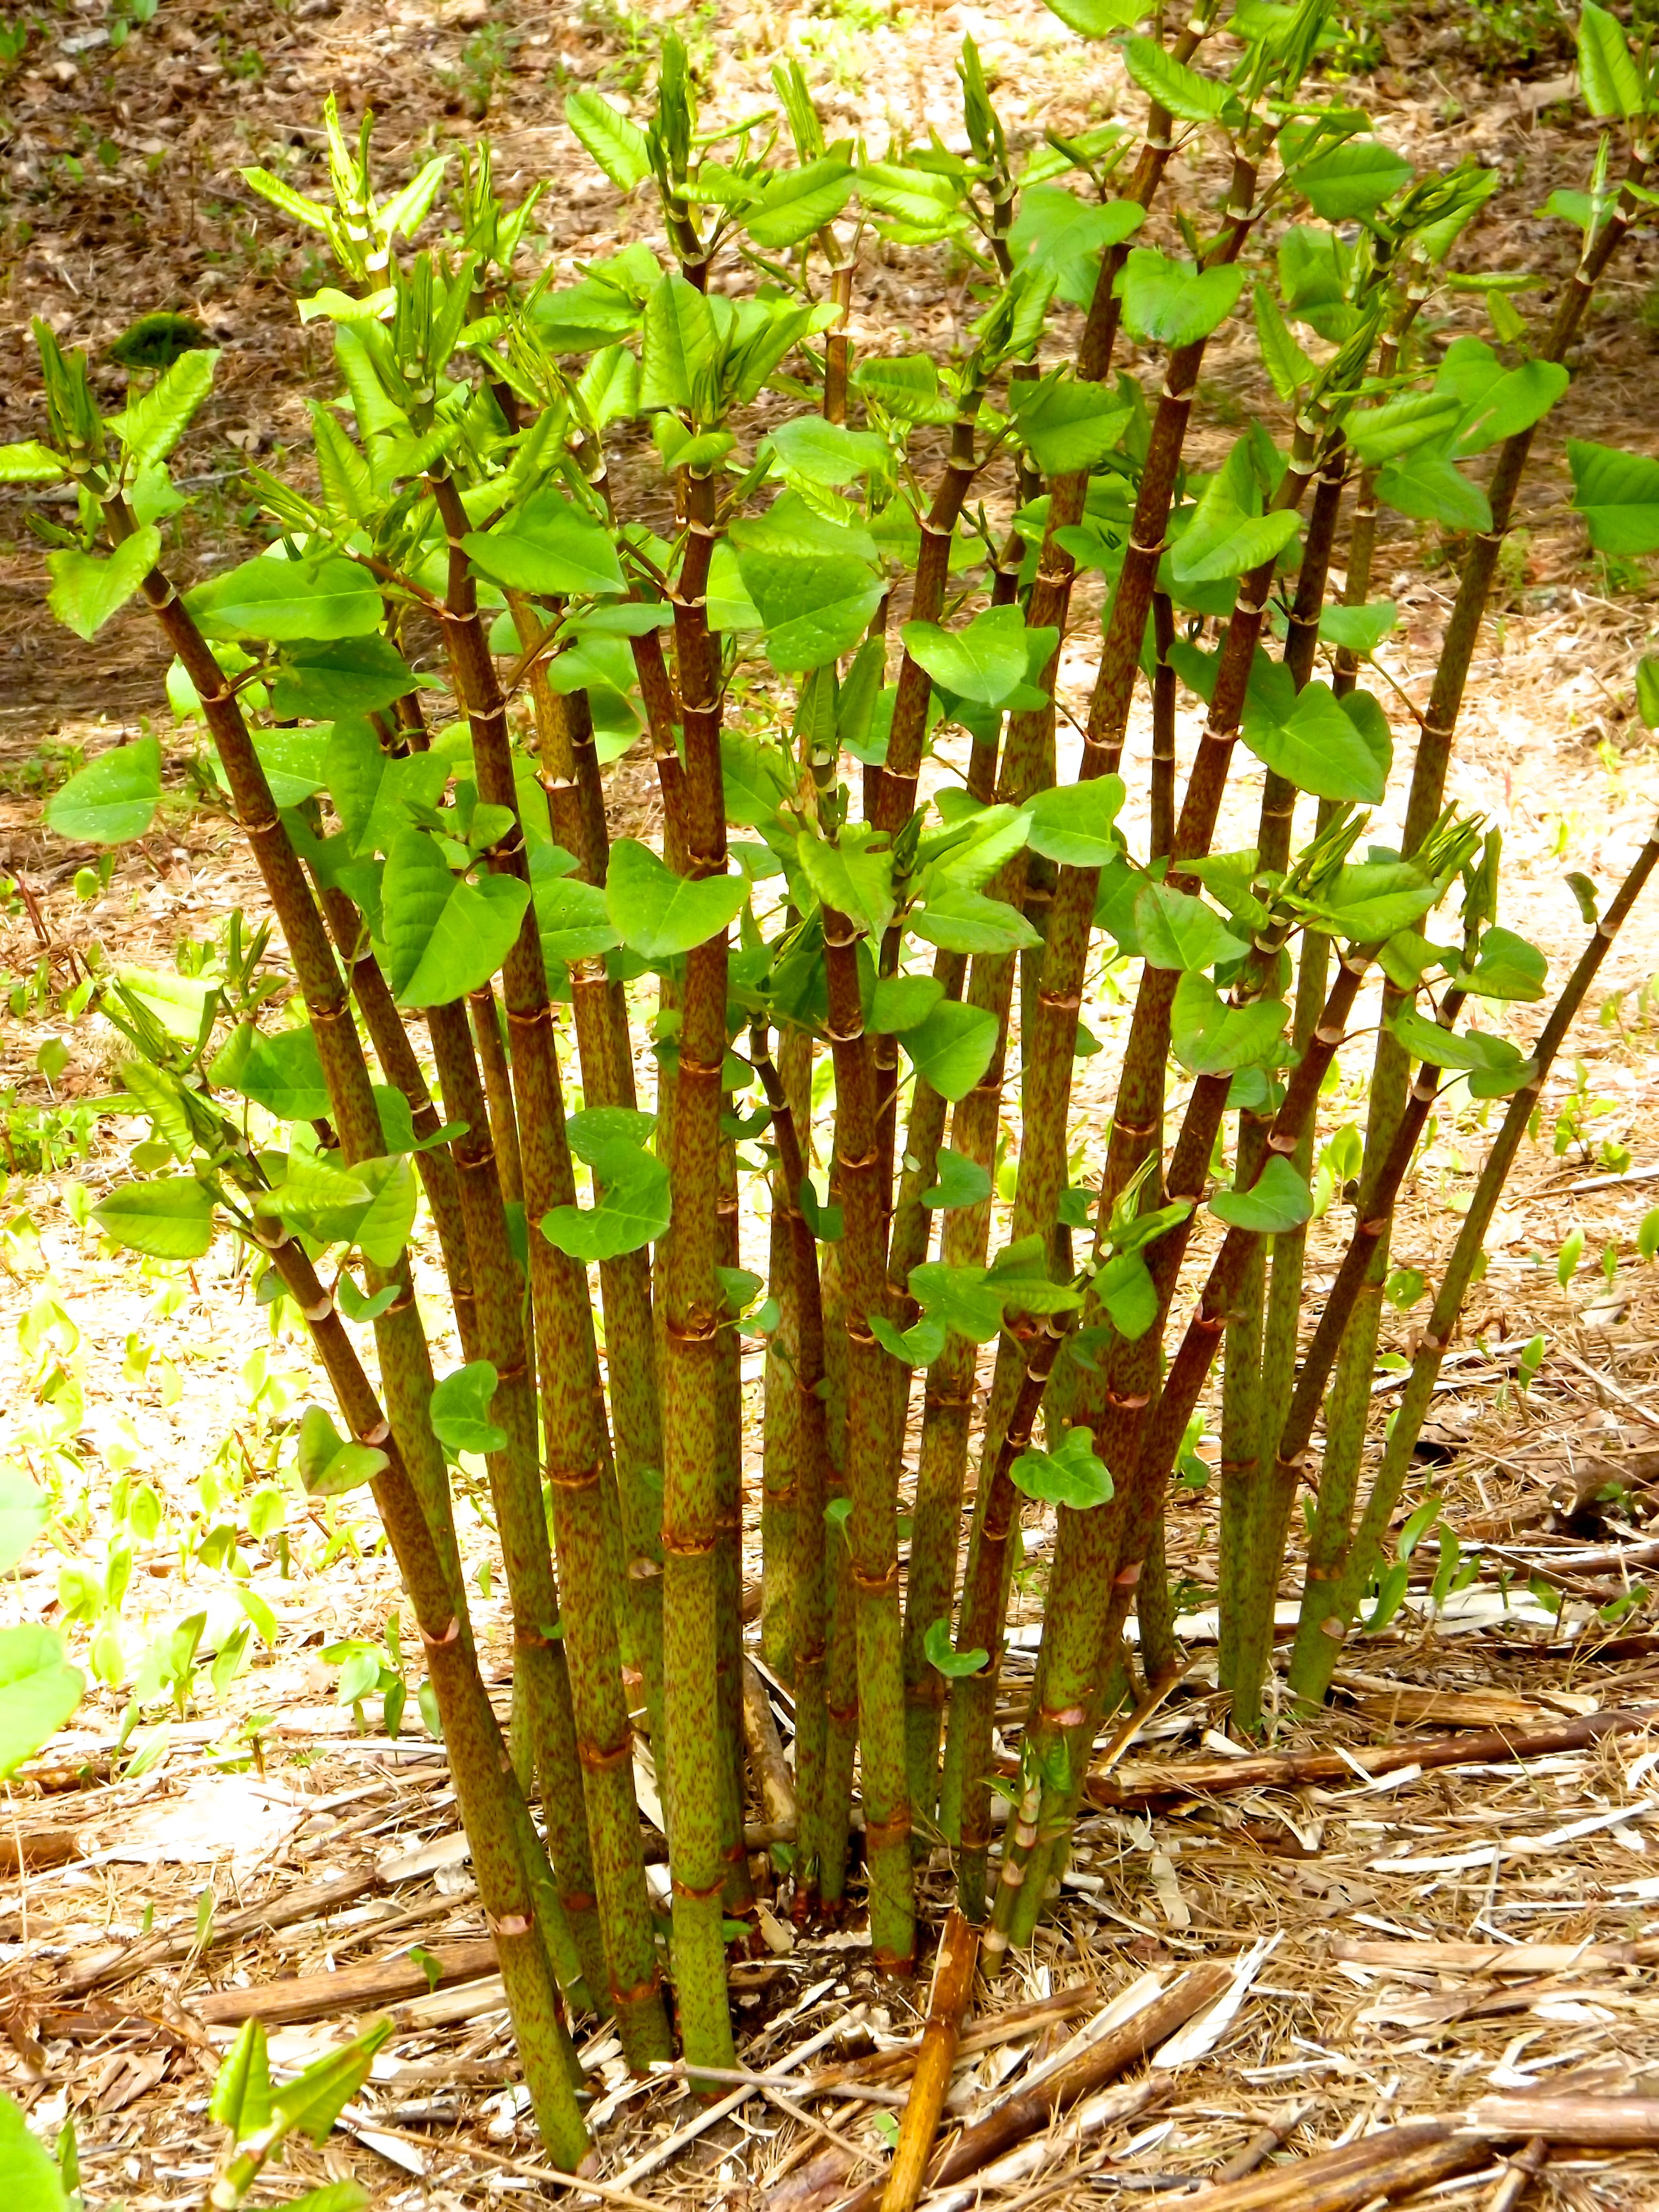 japanese knotweed although known as an invasive species